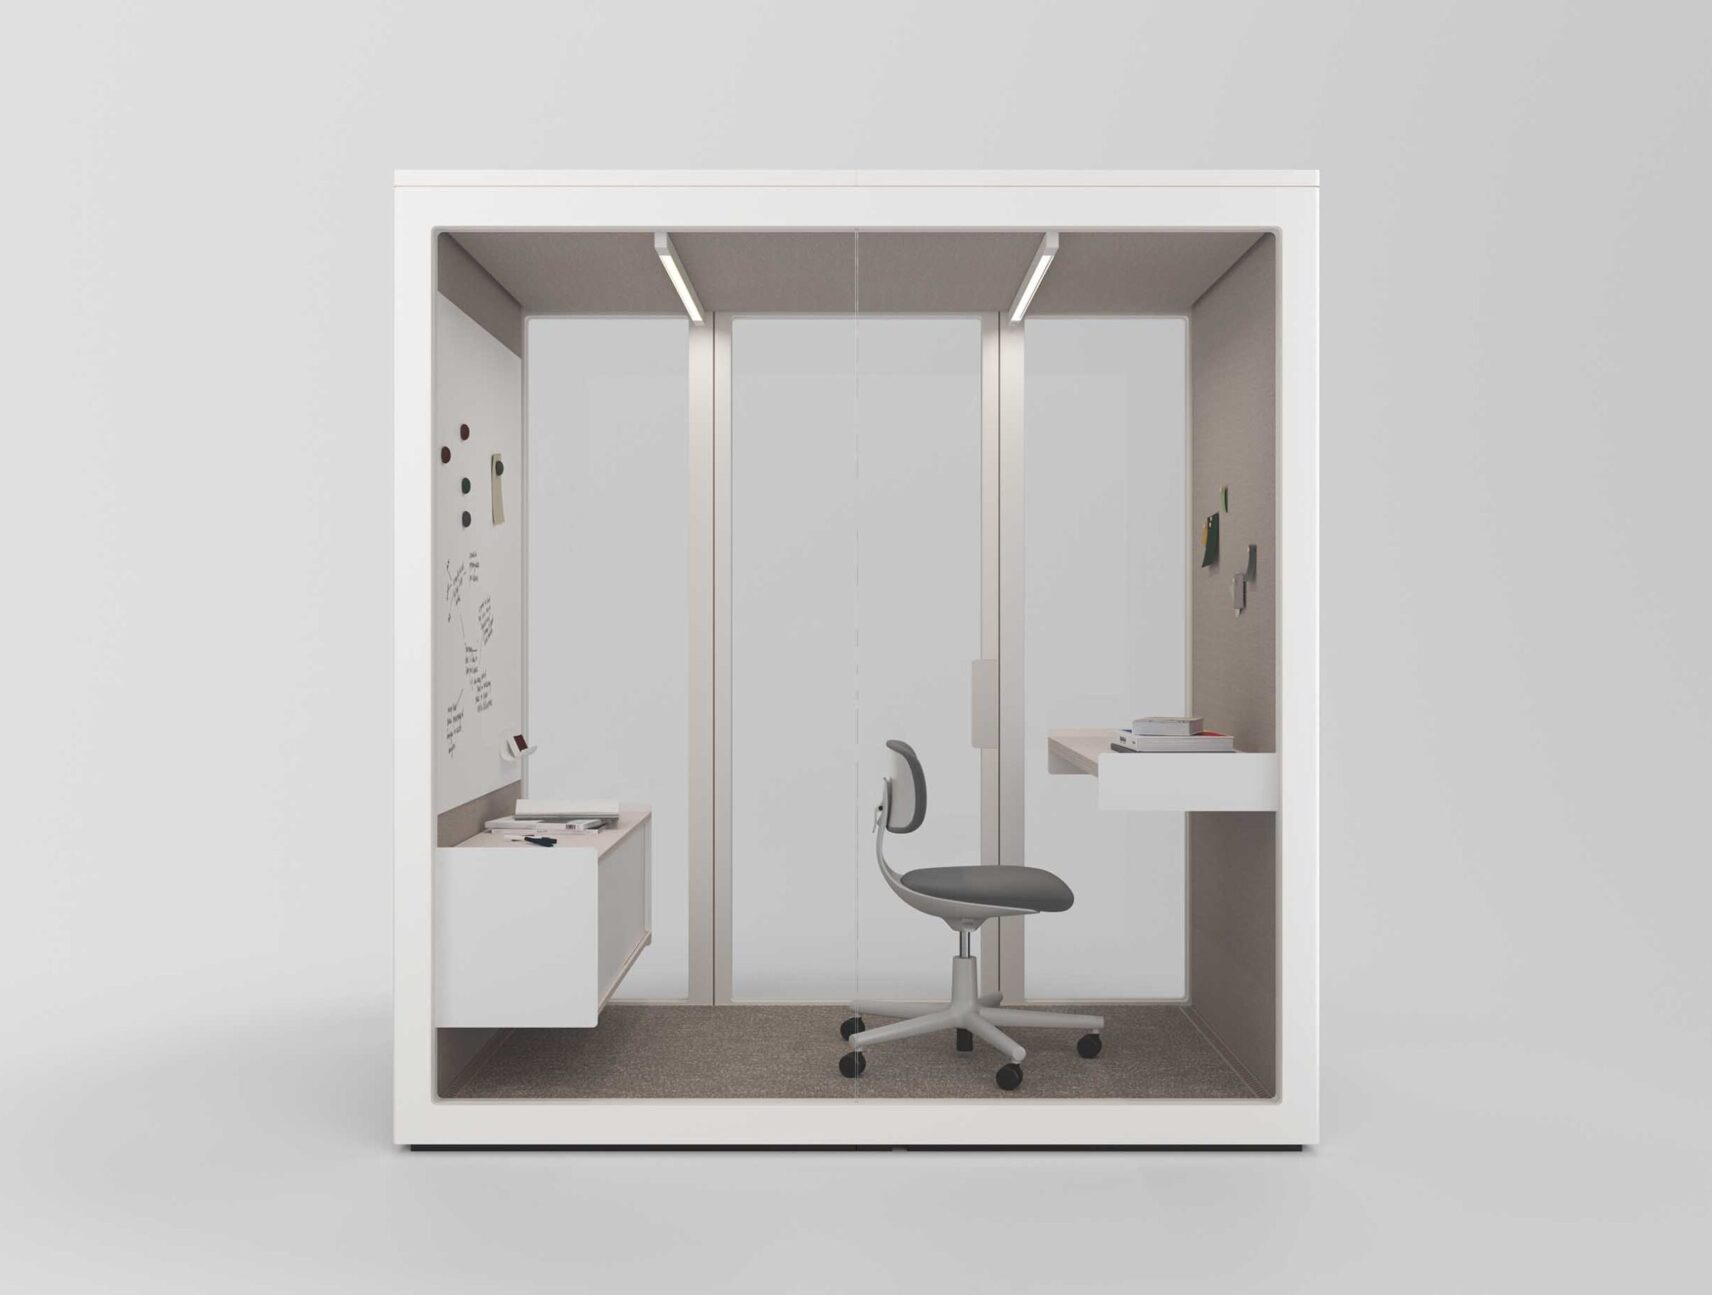 Talky M Microoffice